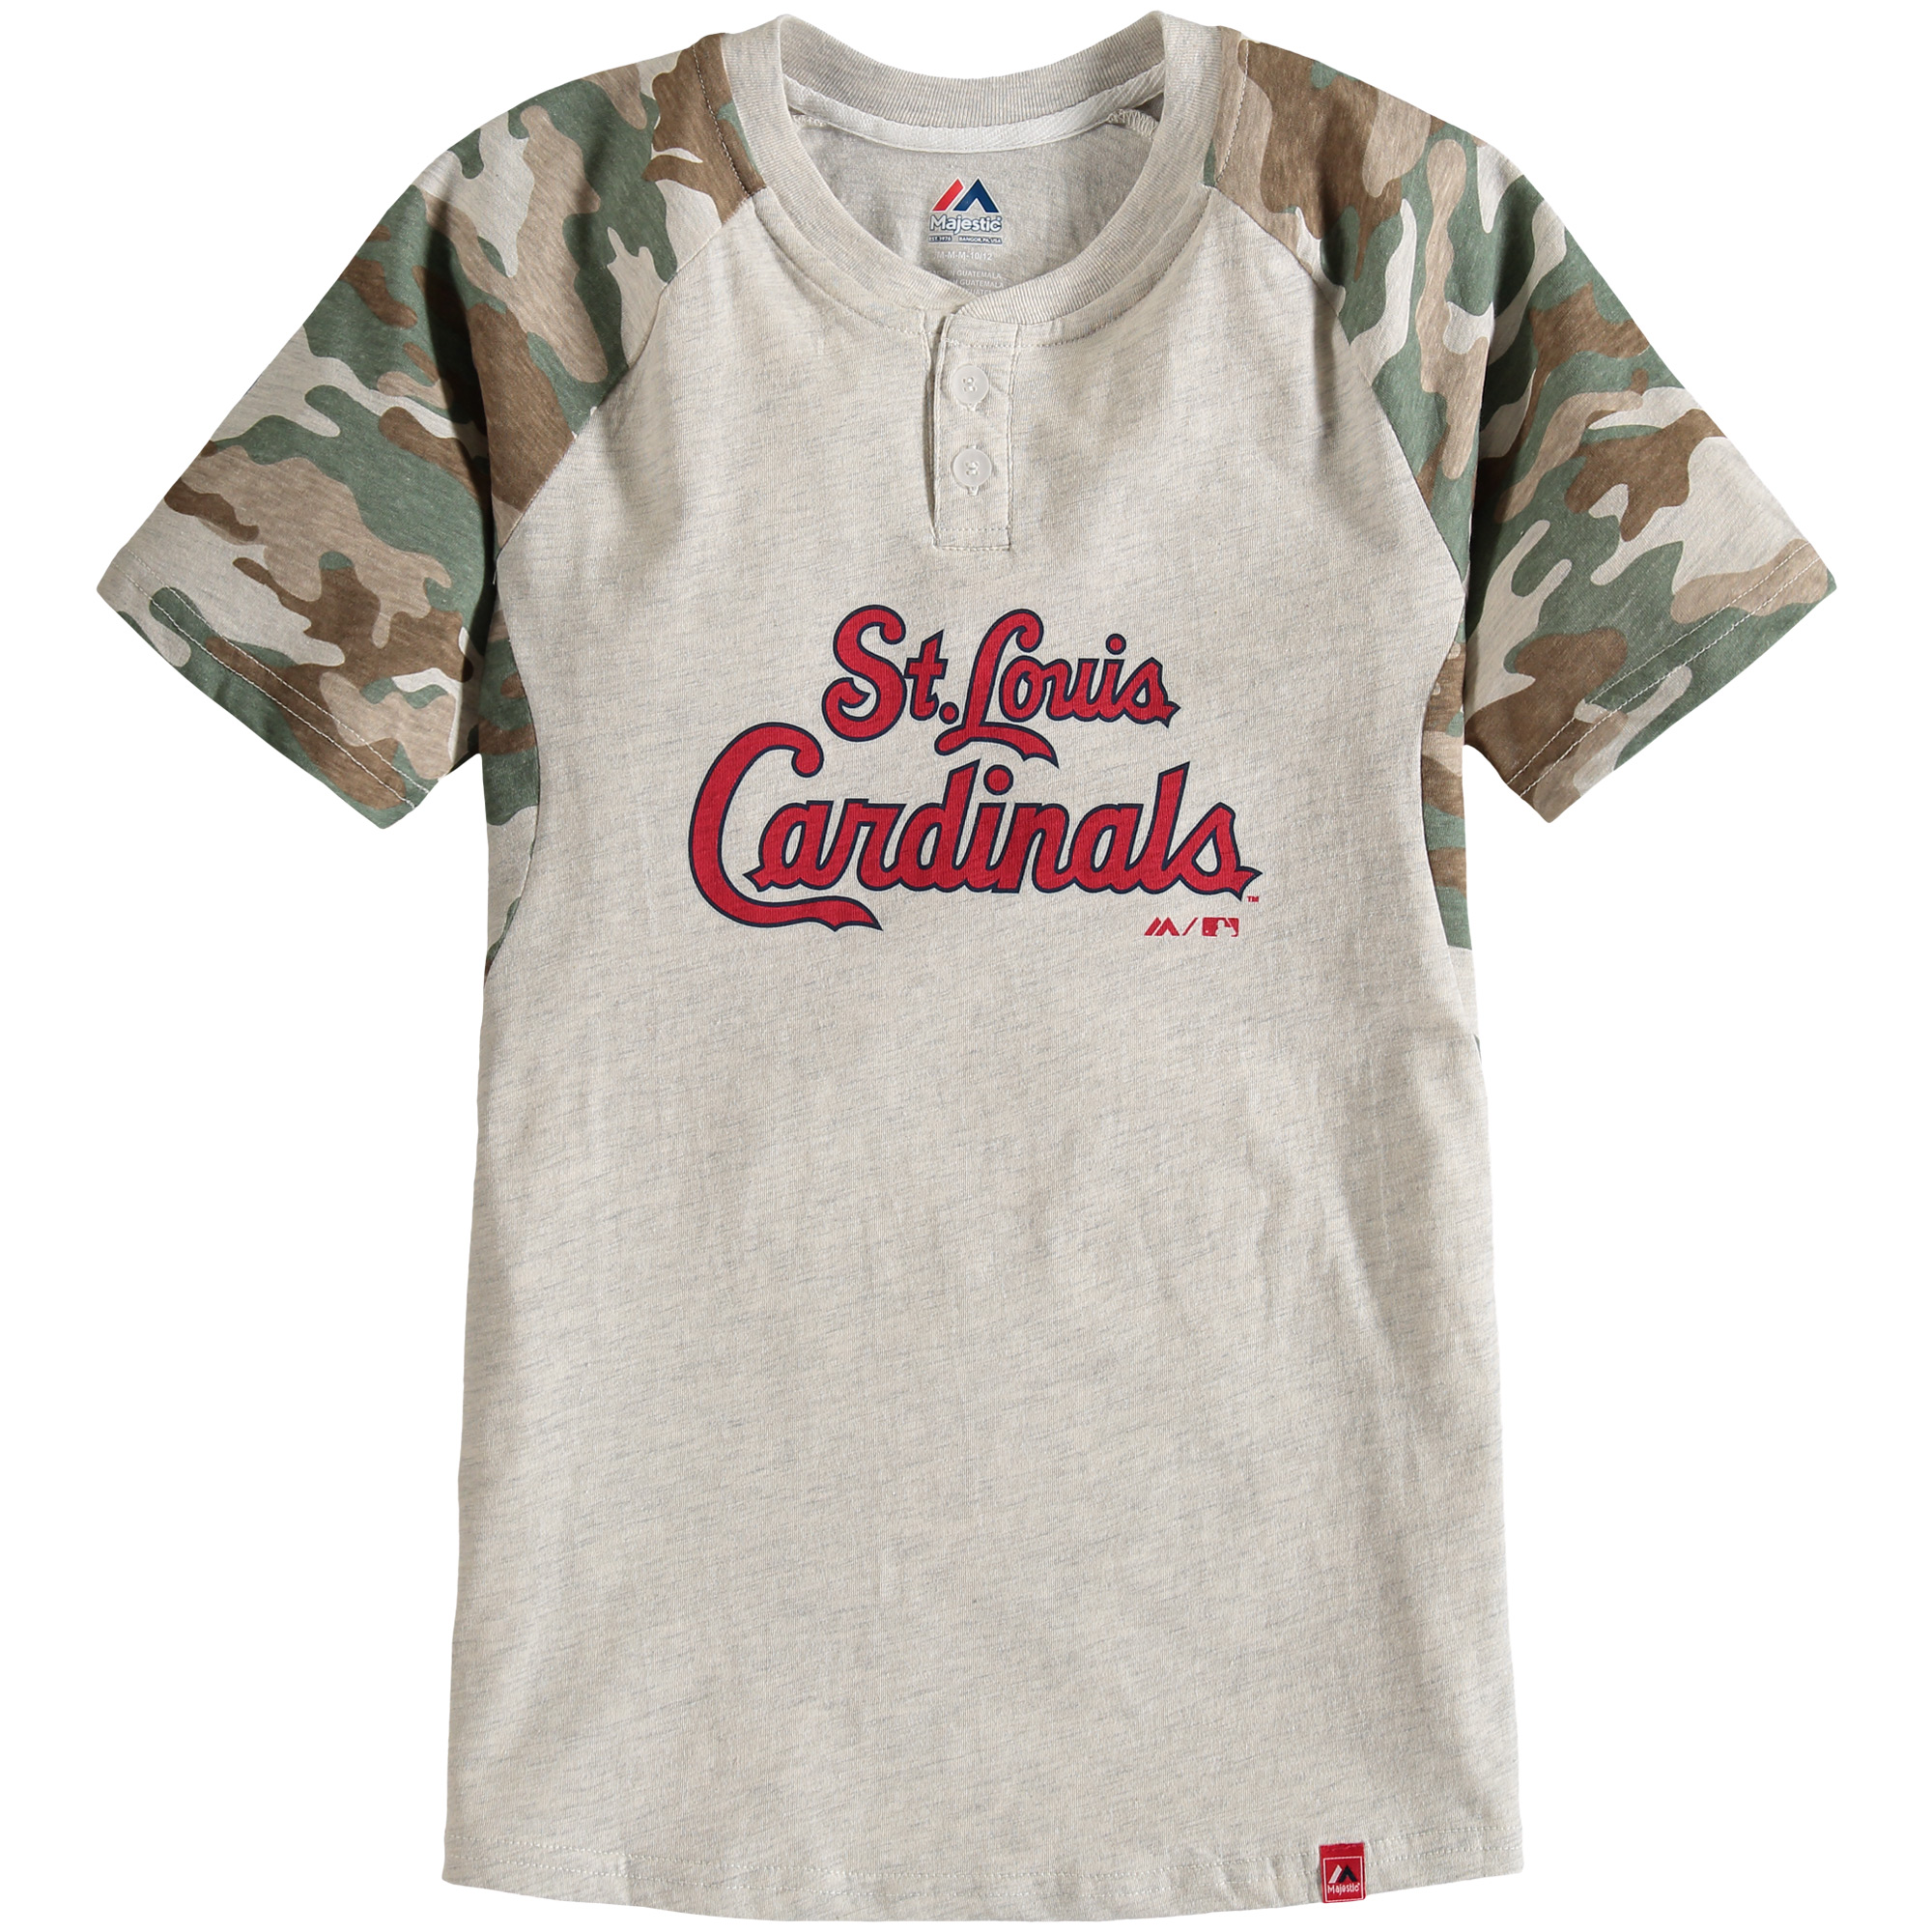 St. Louis Cardinals Majestic Youth Base Stealer Henley T-Shirt - Cream/Camo